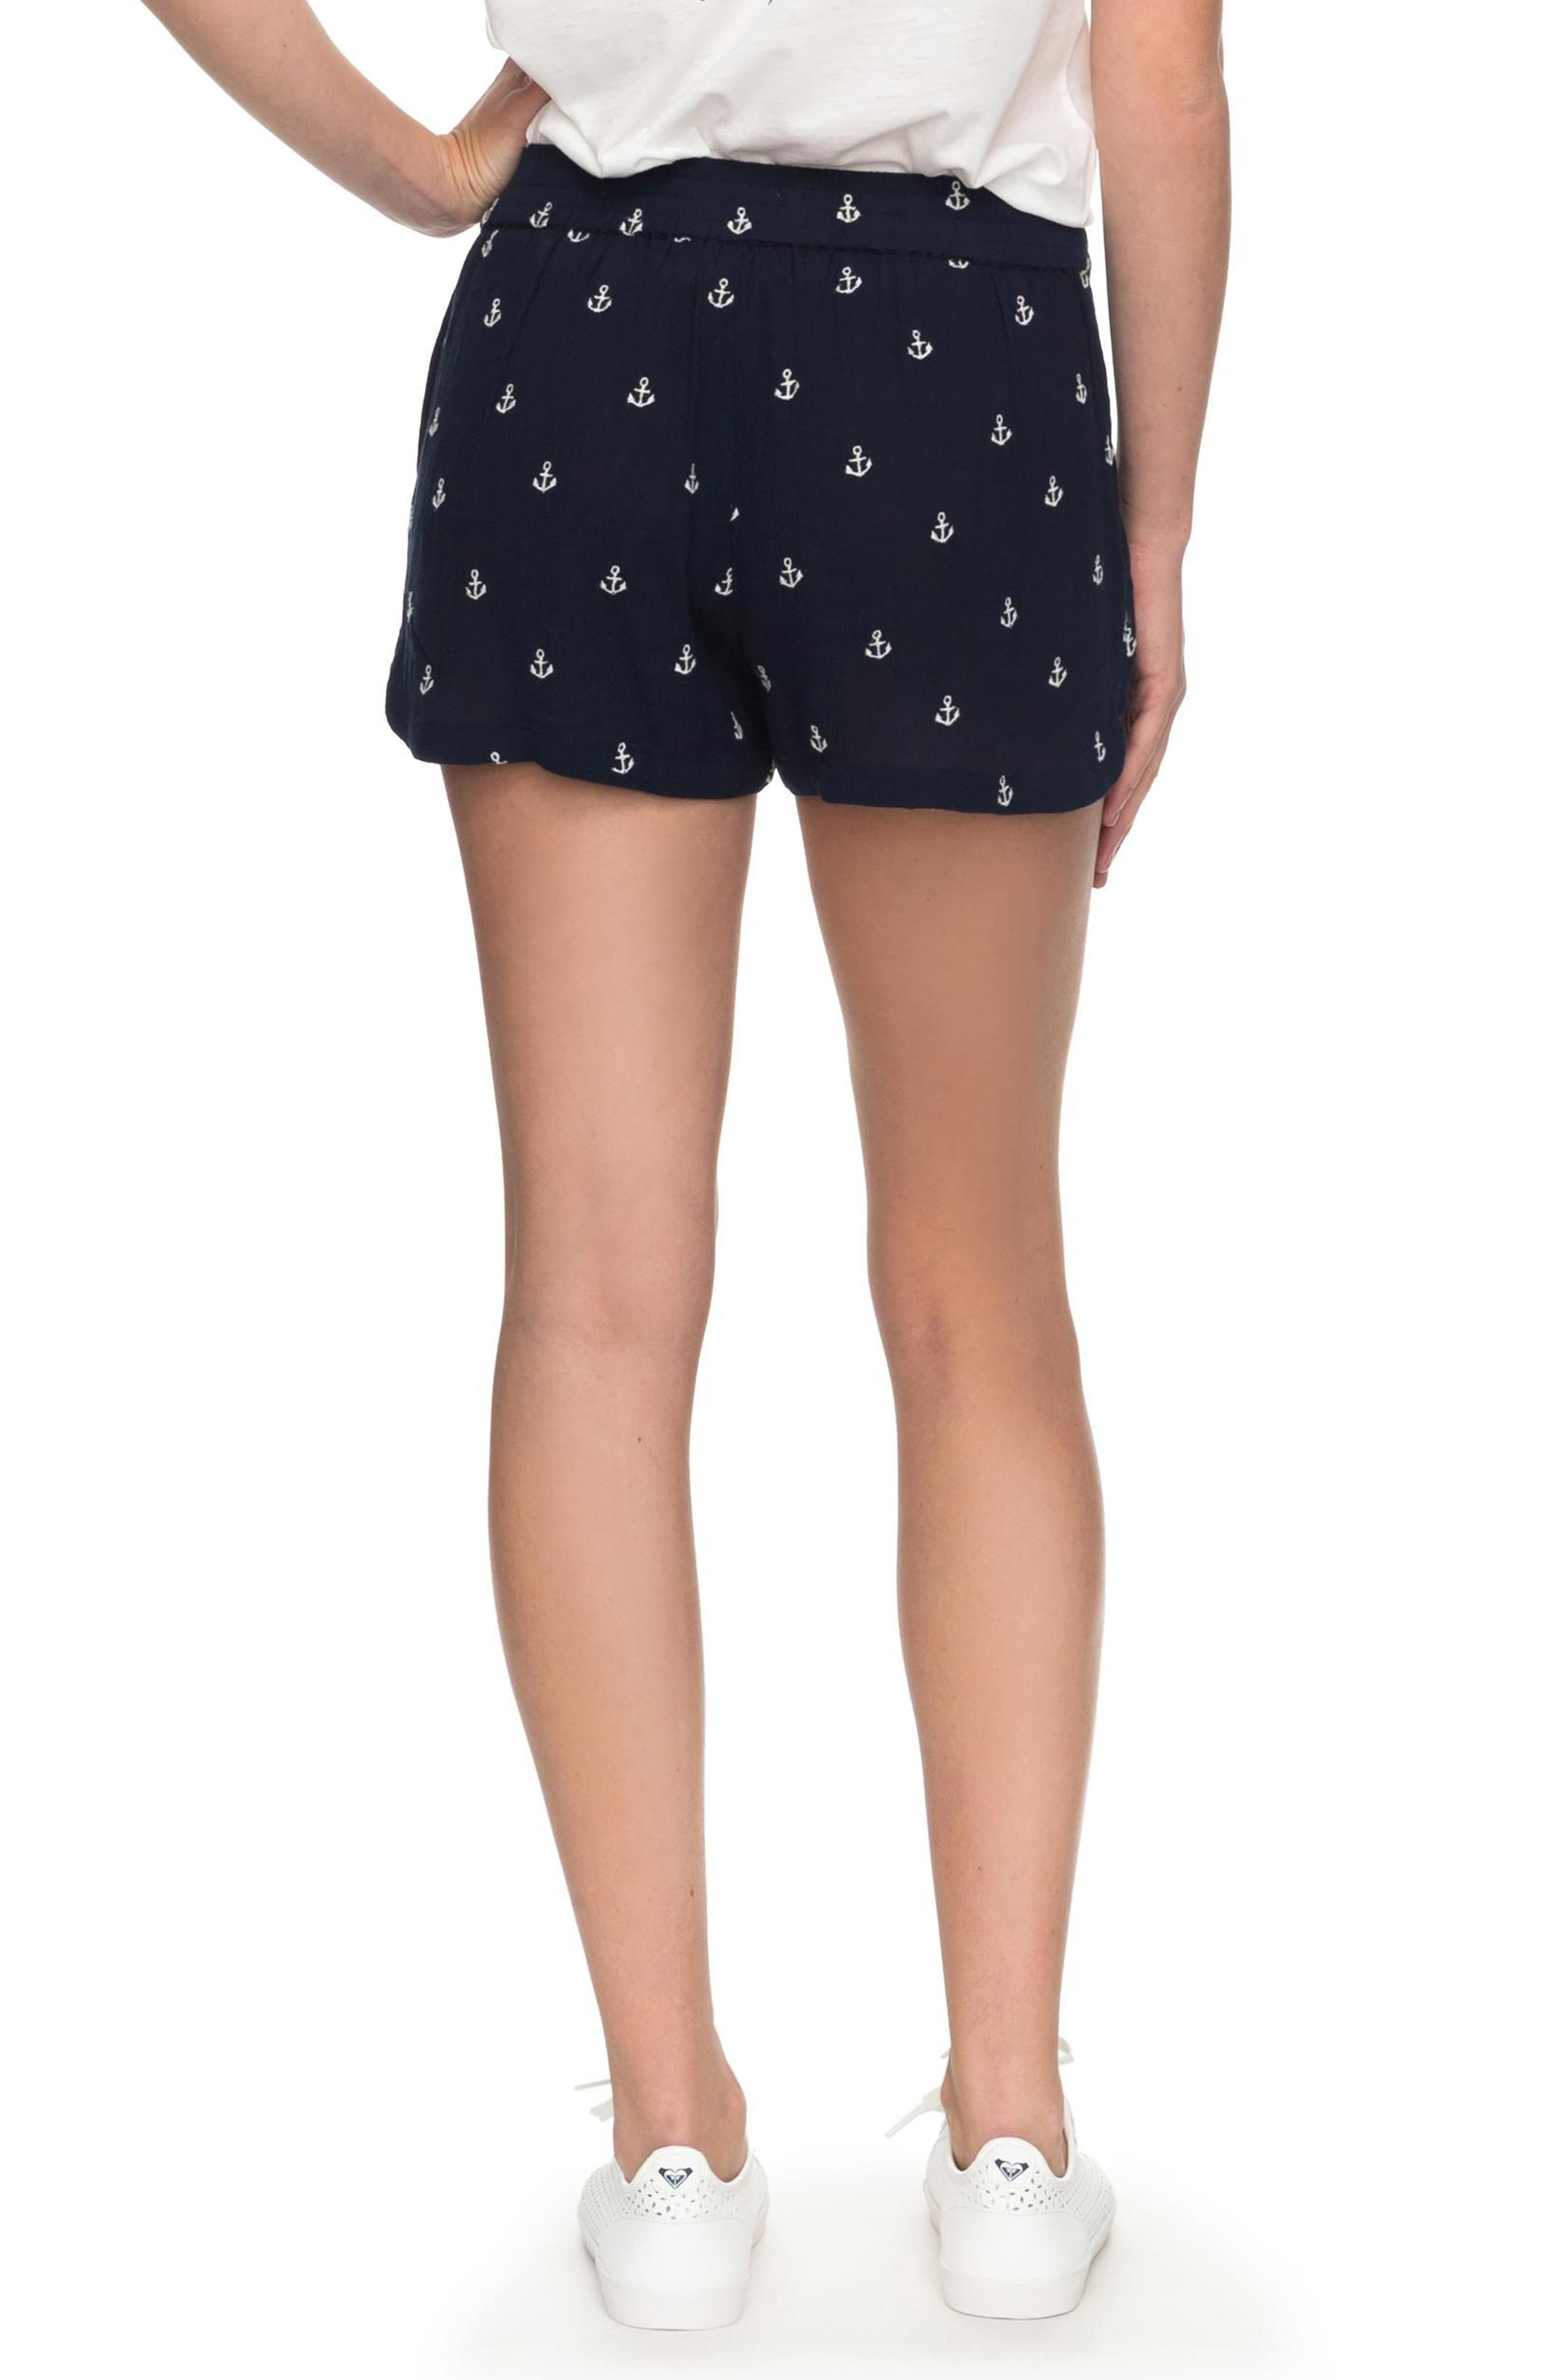 Miami Beachy Shorts,                             Alternate thumbnail 3, color,                             Dress Blues Emby Anchor